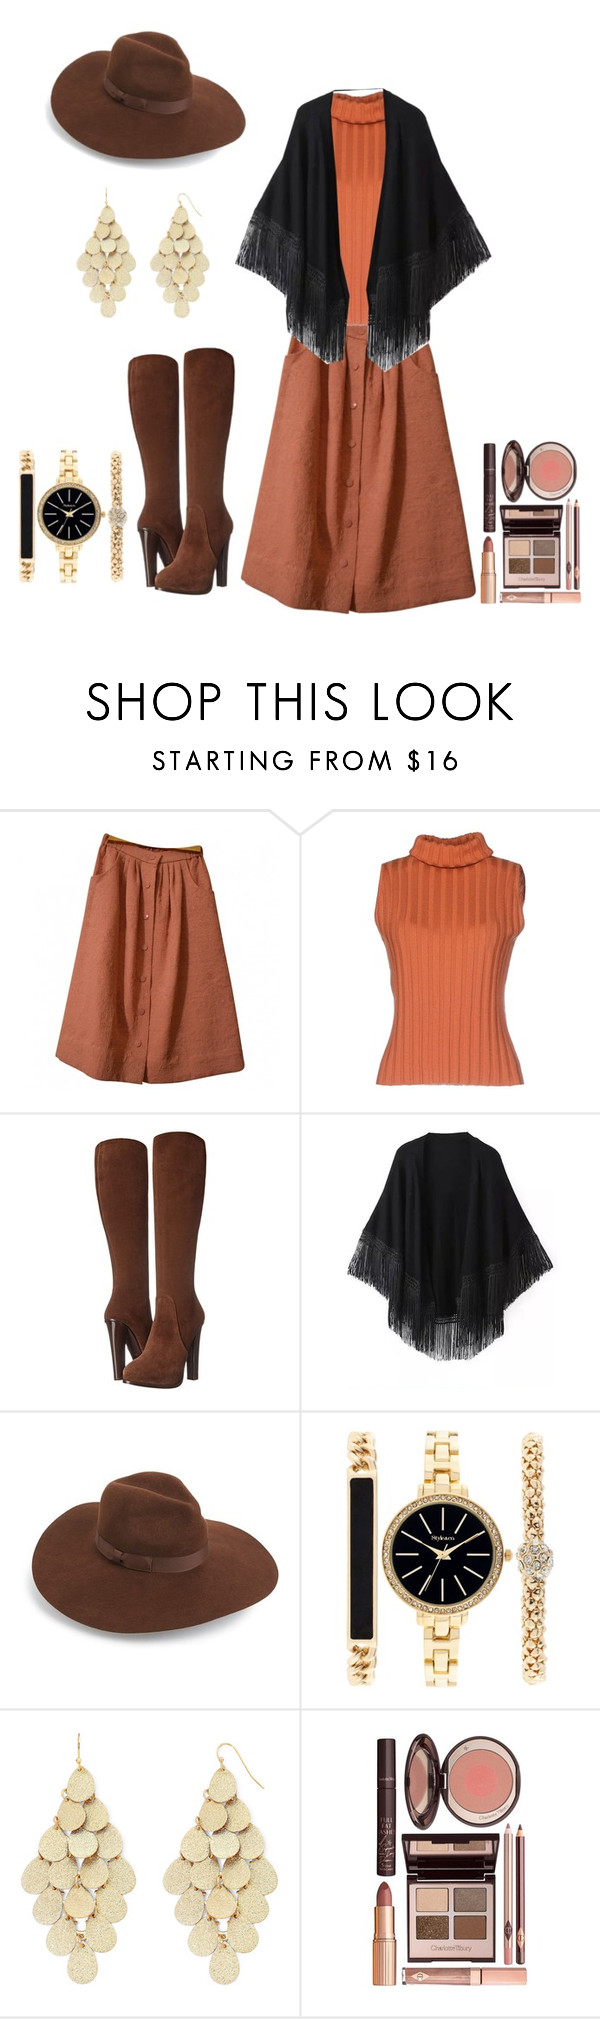 """Untitled #2635"" by empathetic ❤ liked on Polyvore featuring ASOS, DuÅ¡an, Ralph Lauren Collection, Relaxfeel, Lack of Color, Style & Co., Bold Elements and Charlotte Tilbury"